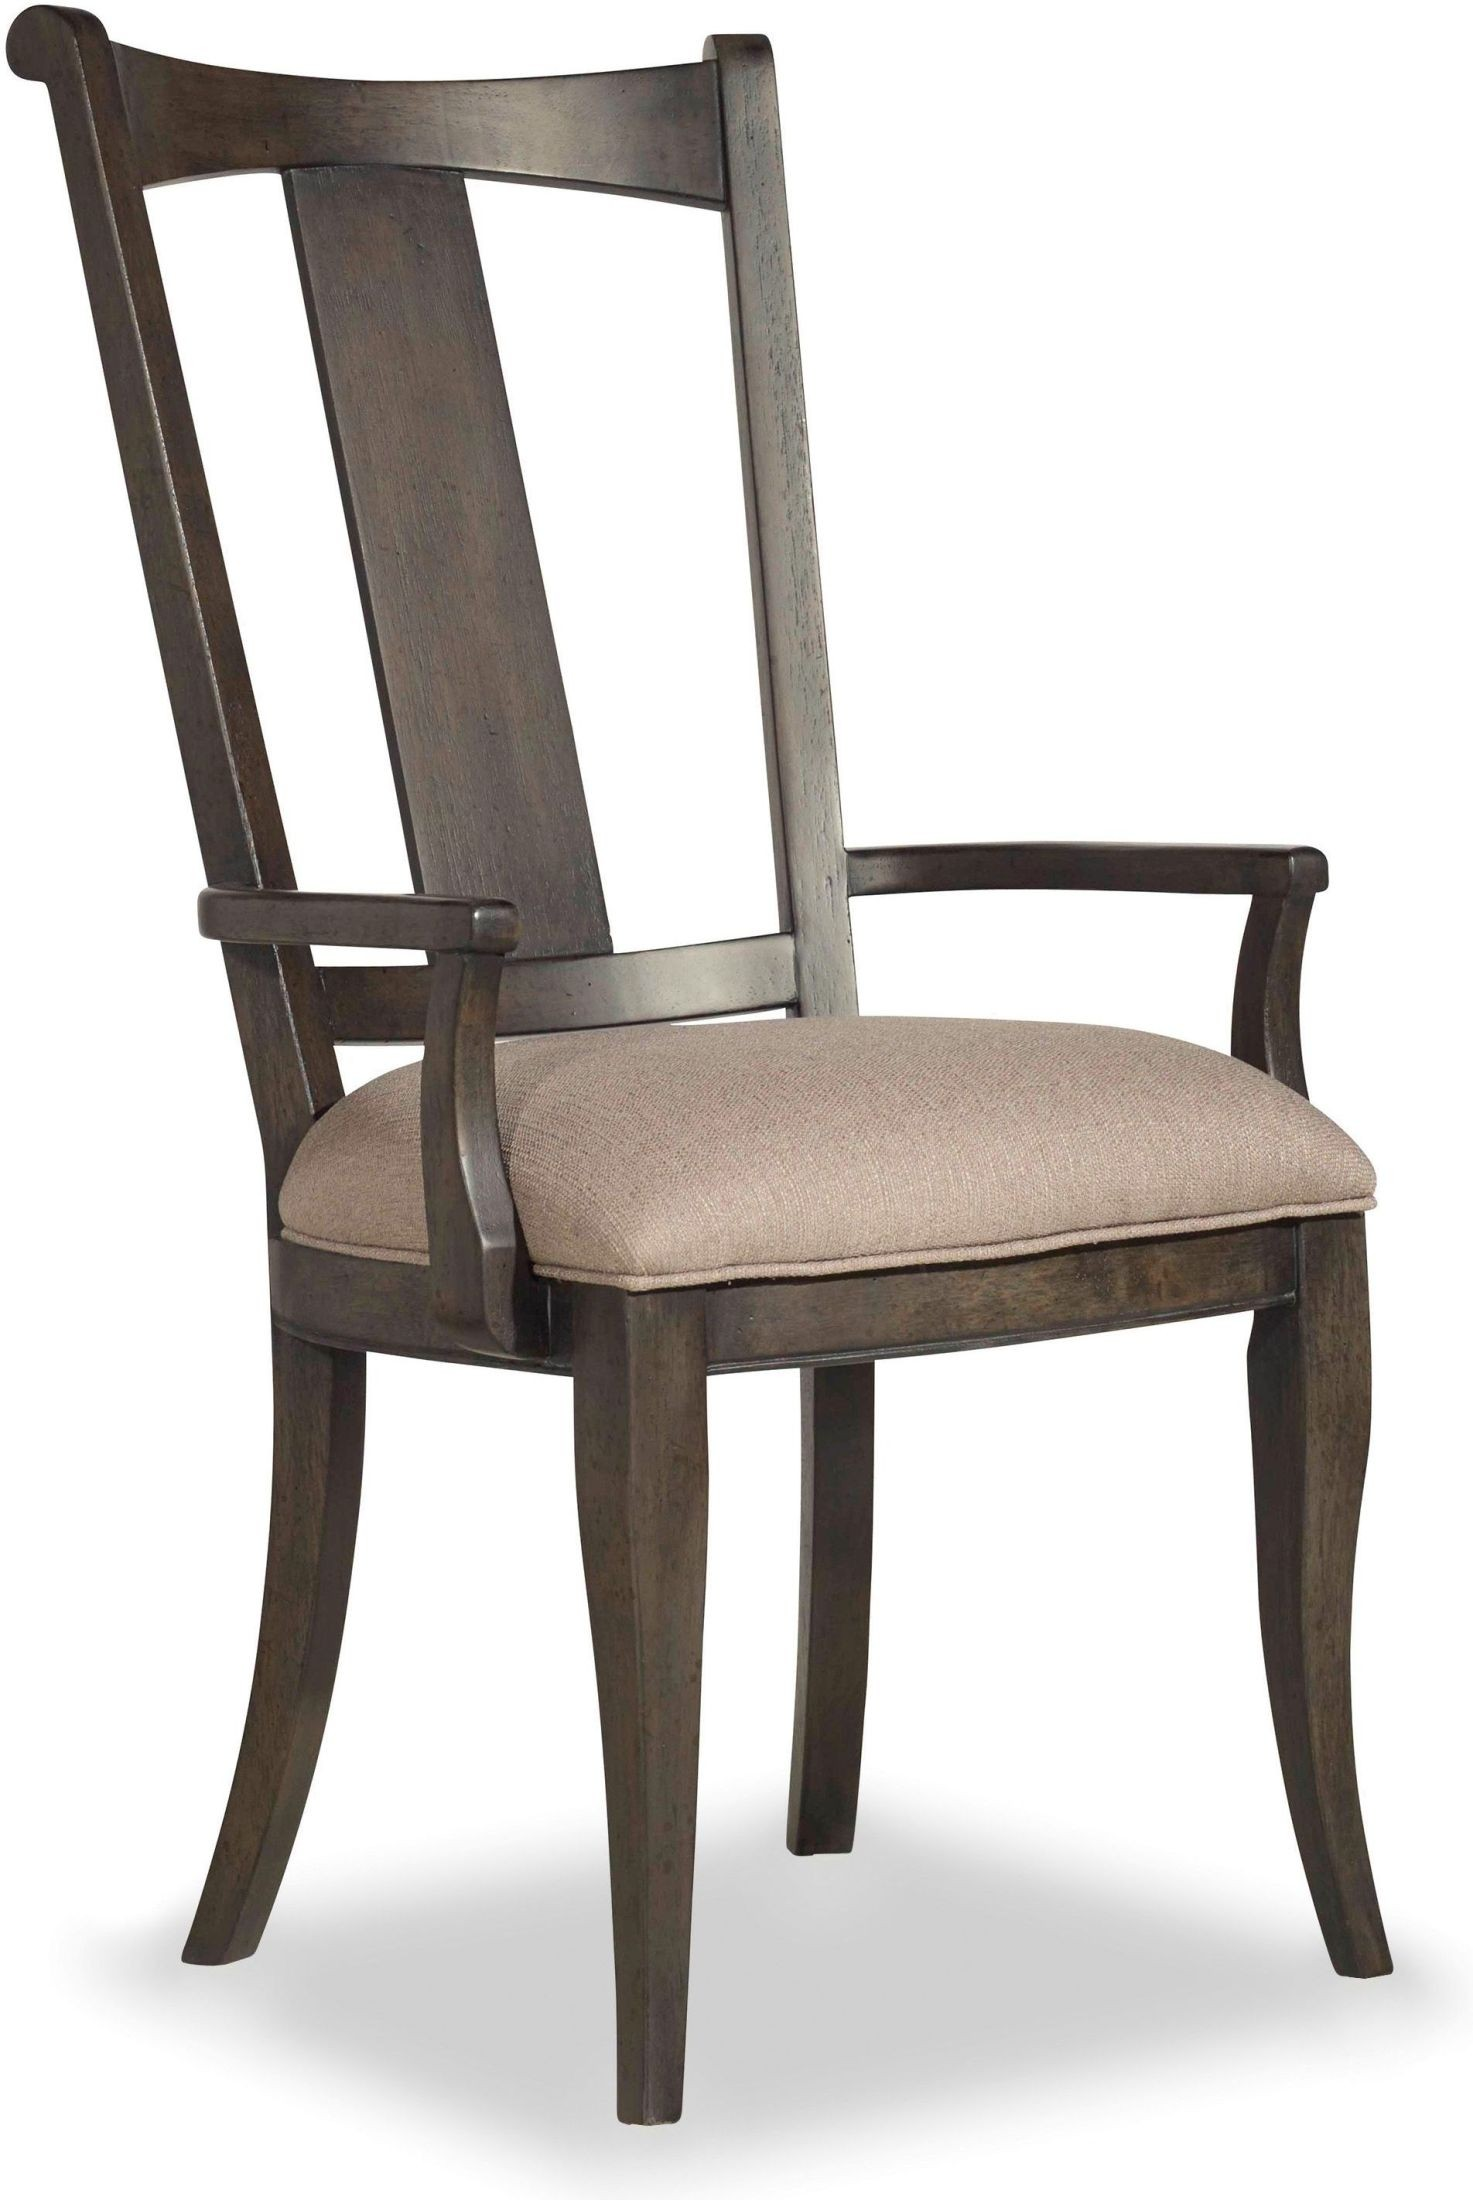 Industry West Marais A Side Chair Review Home Decor